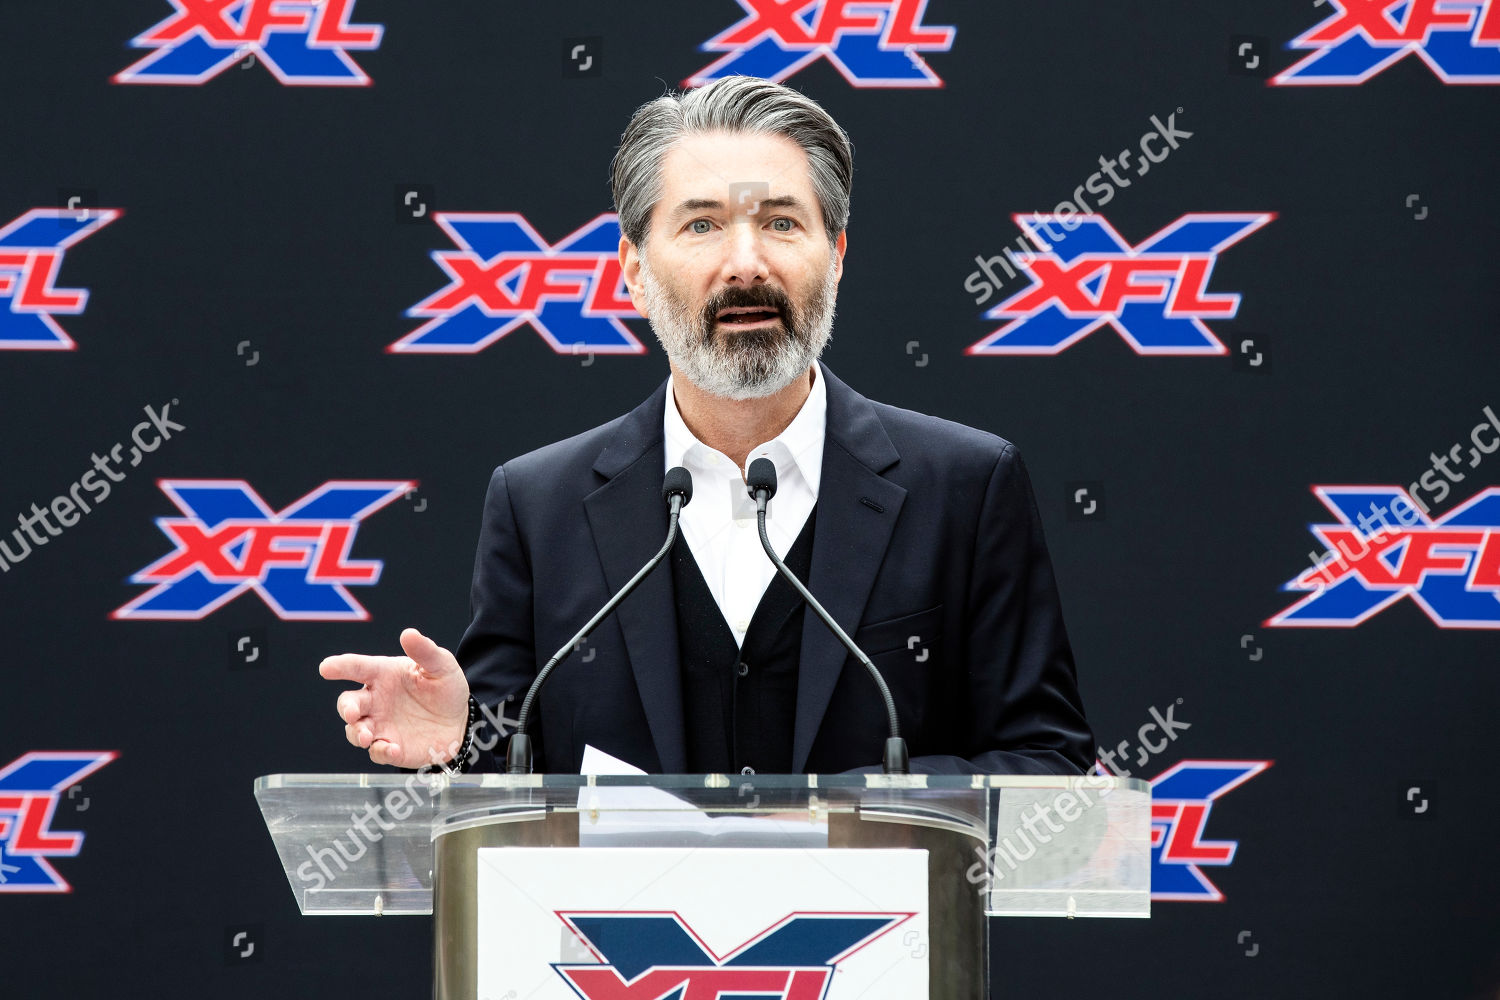 XFL president and CEO Jeffery Pollack